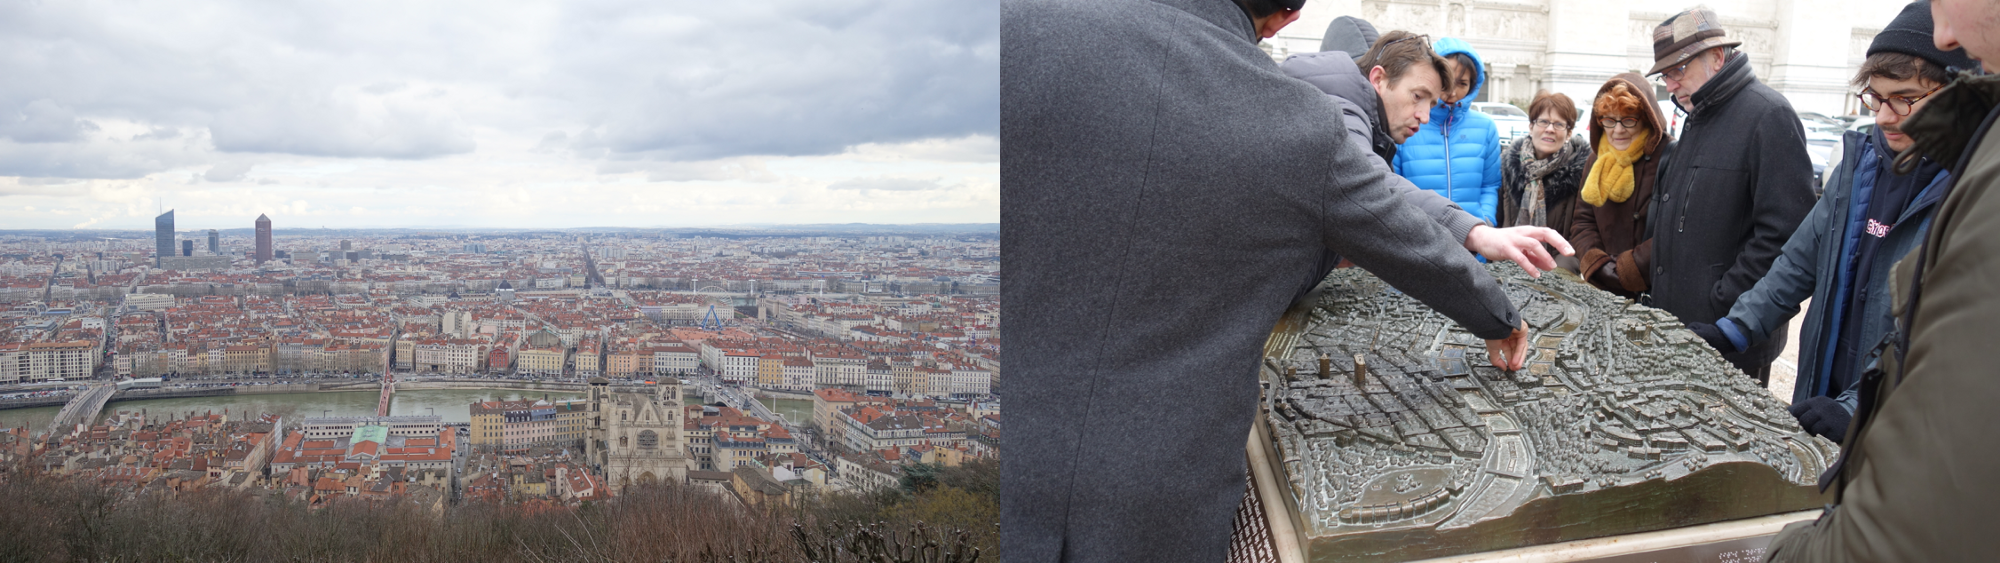 [Left] The spectacular view from Fourvière Hill in Lyon [Right] People clamoring to make sense of it.